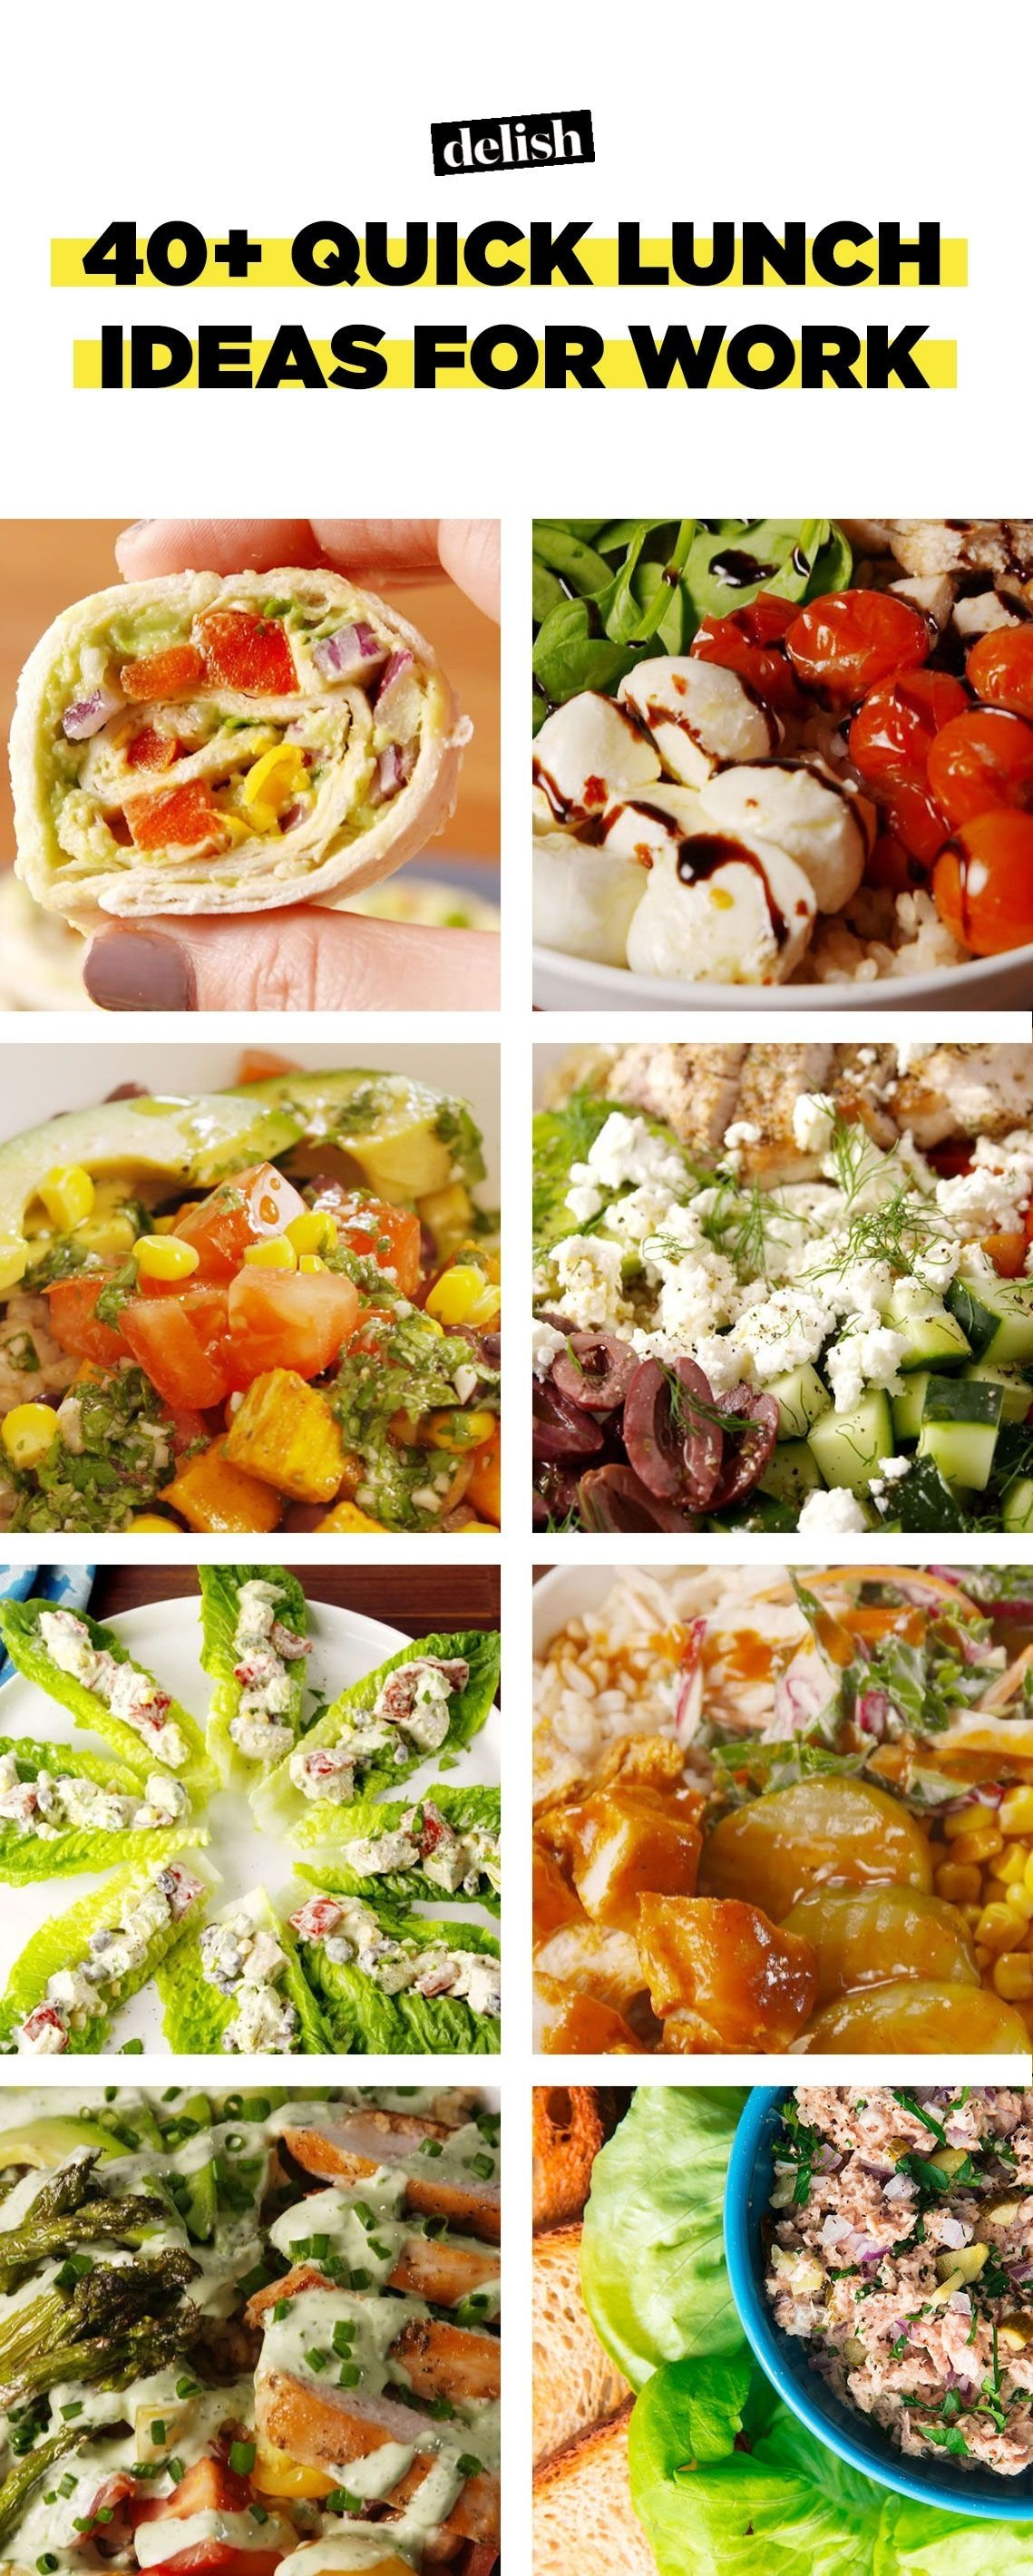 40+ quick lunch ideas for work – recipes for fast work lunches